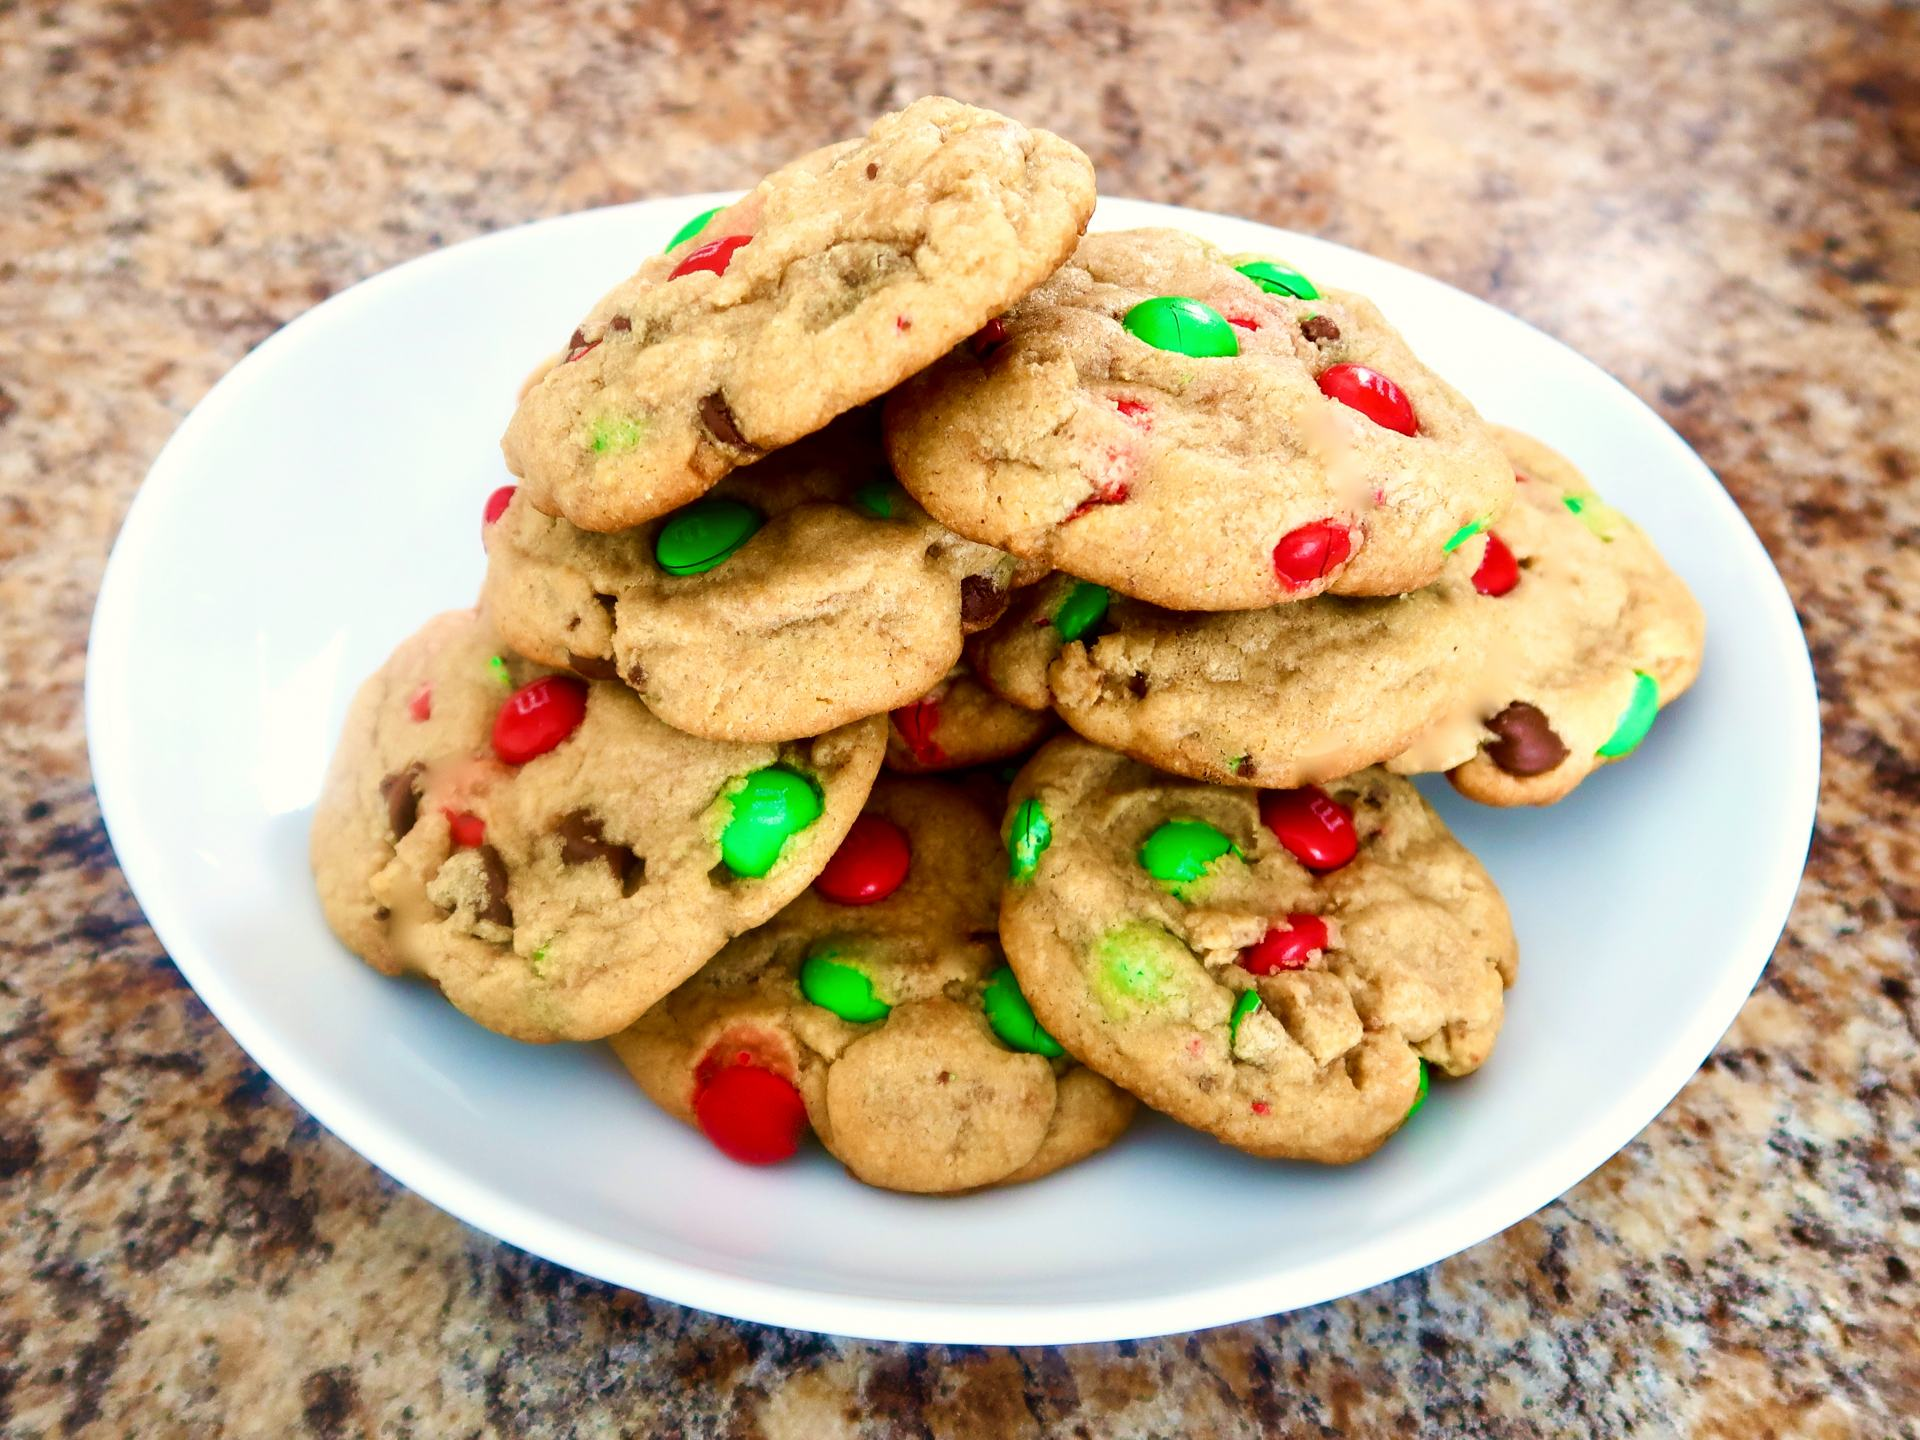 An amazing chocolate chip cookie recipe for Christmas